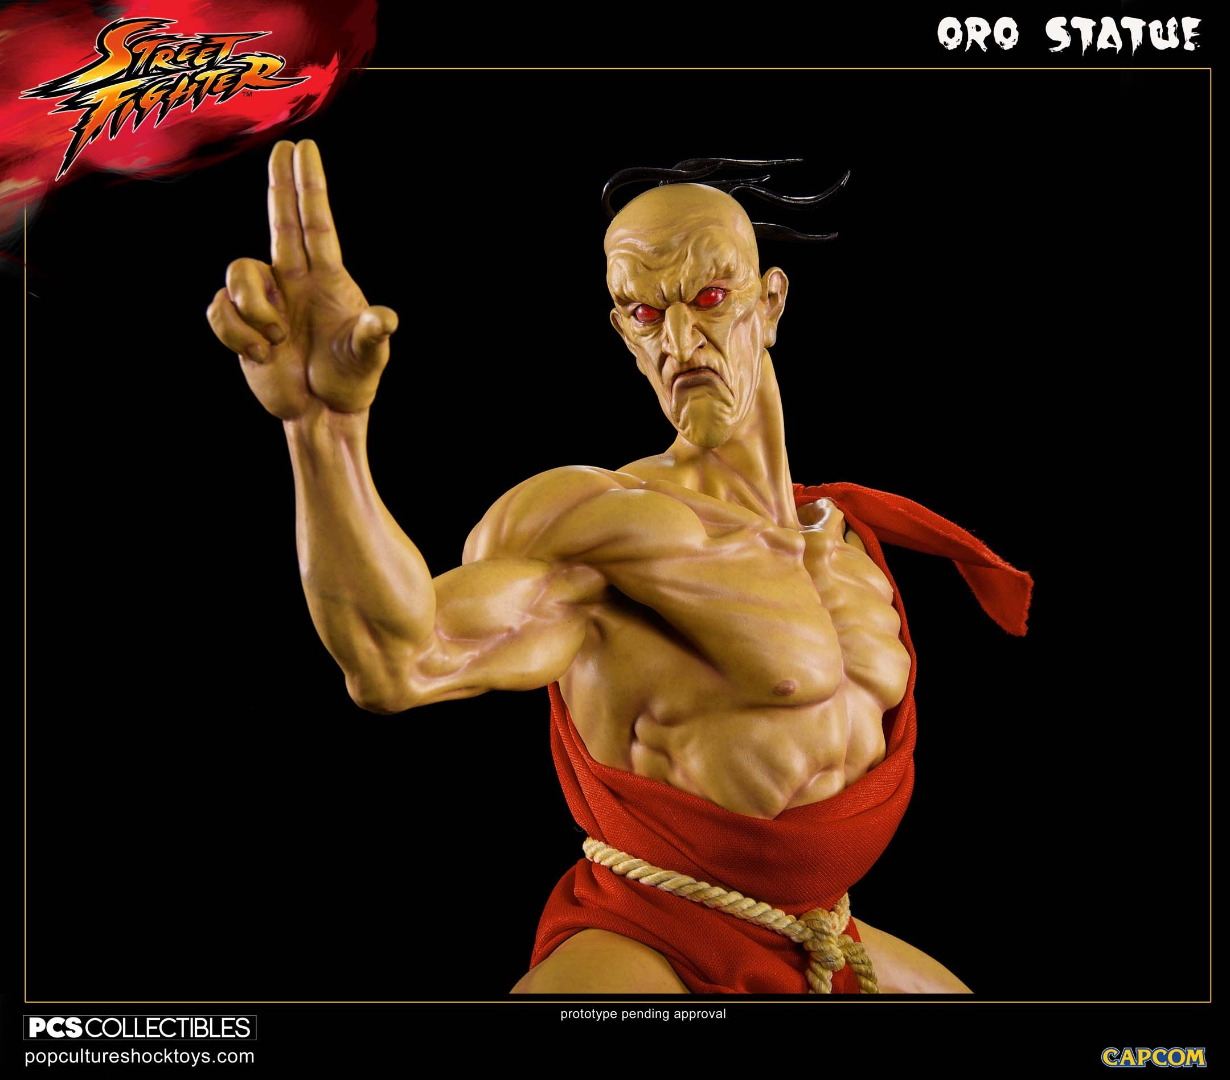 Street Fighter: Oro 1:4 Statue